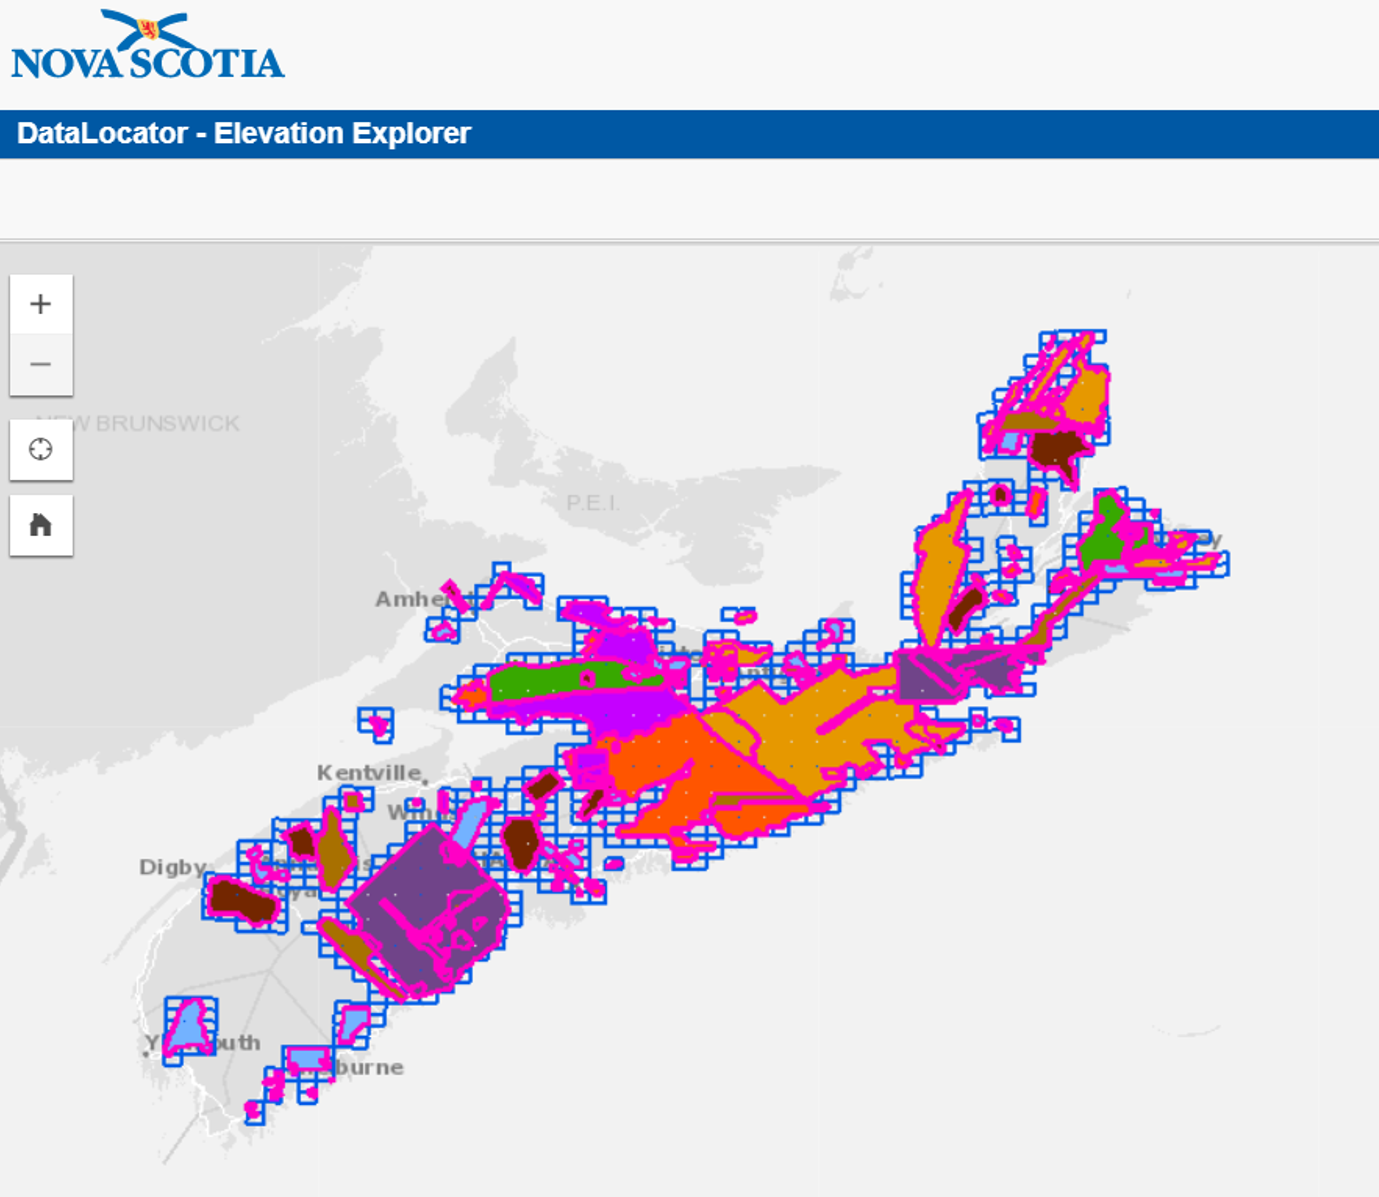 Nova Scotia geospatial data Elevation Explorer